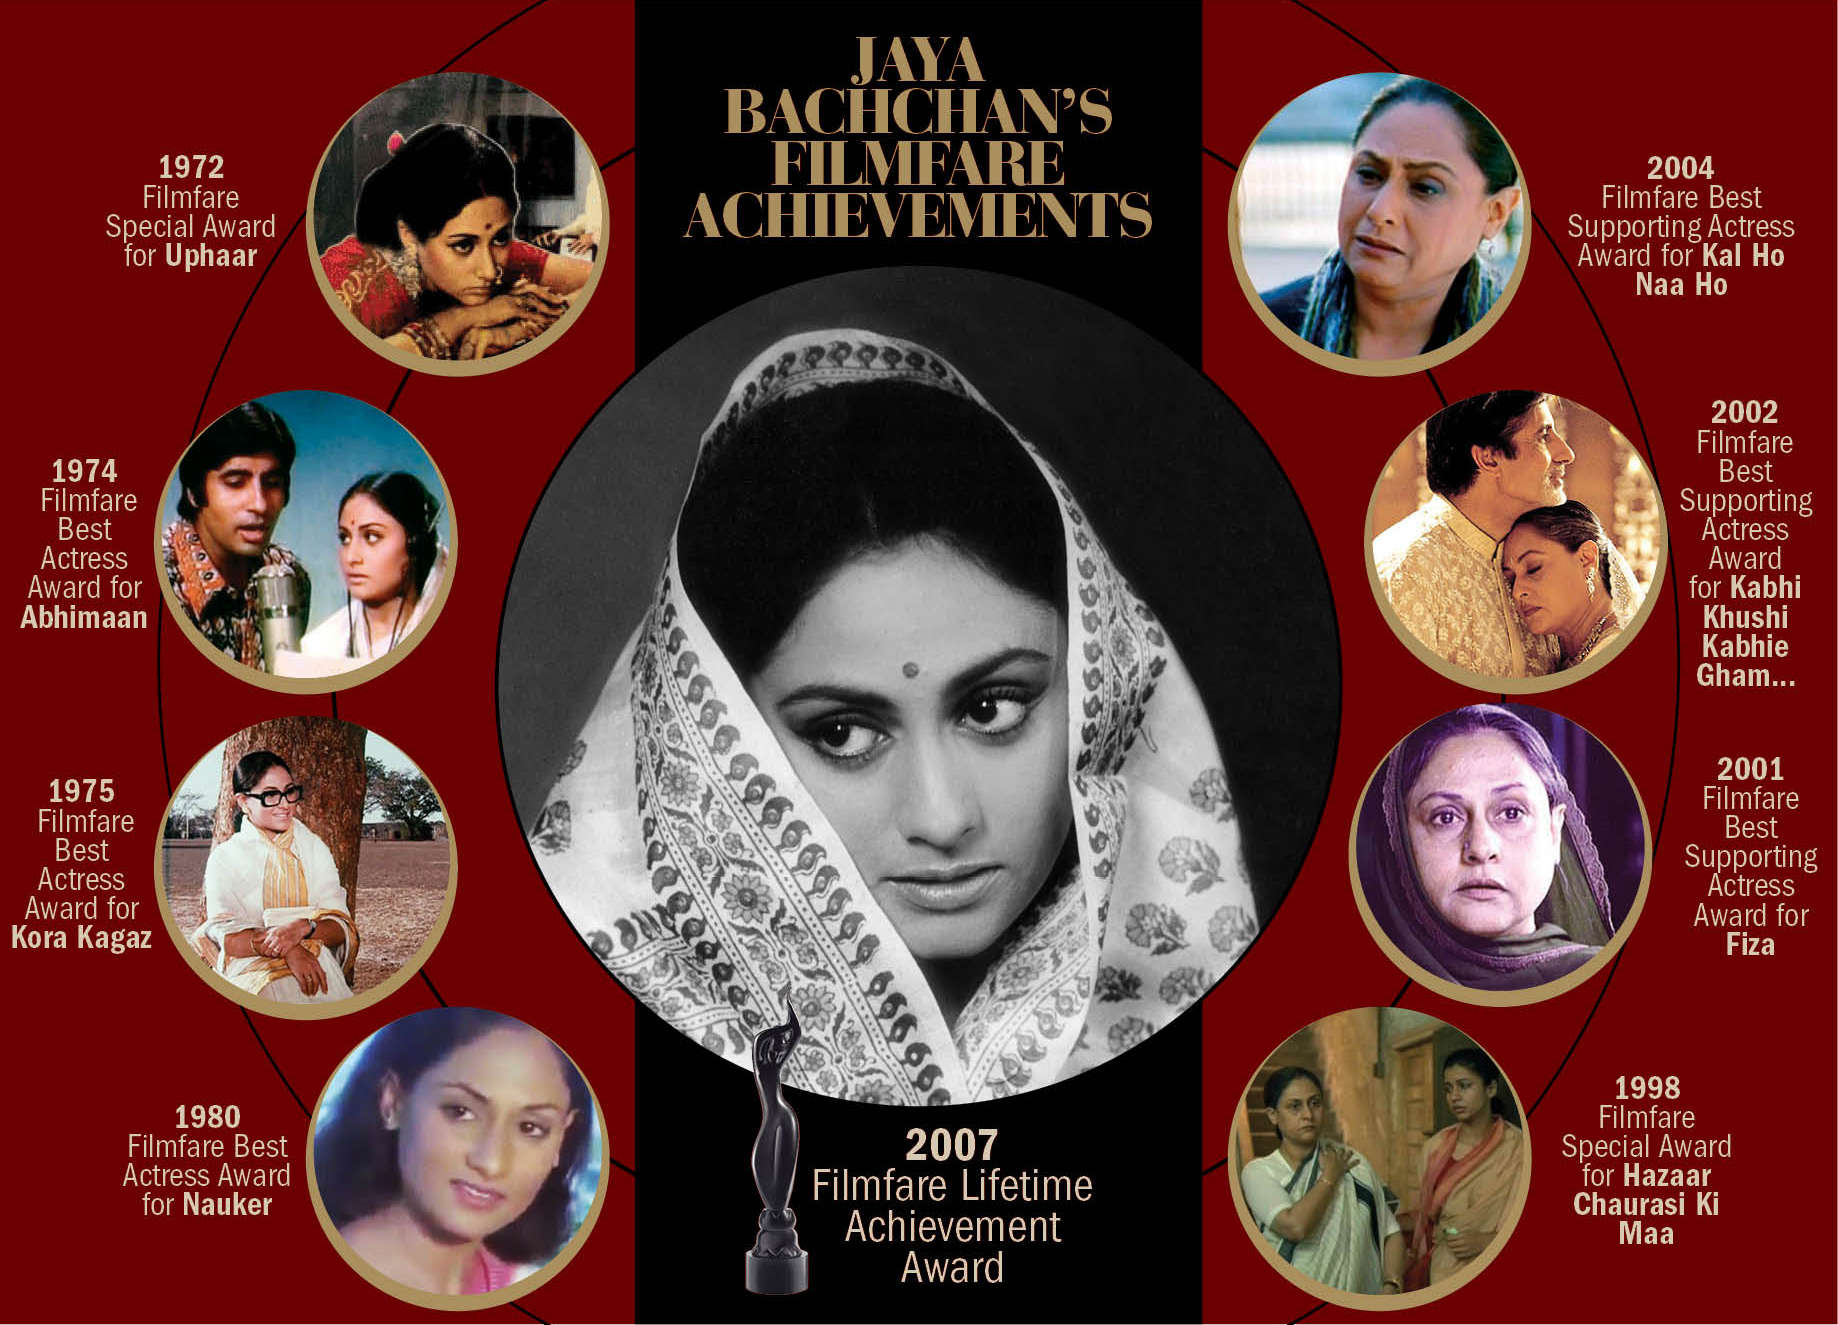 We take a look at Jaya Bachchan's illustrious career through her films